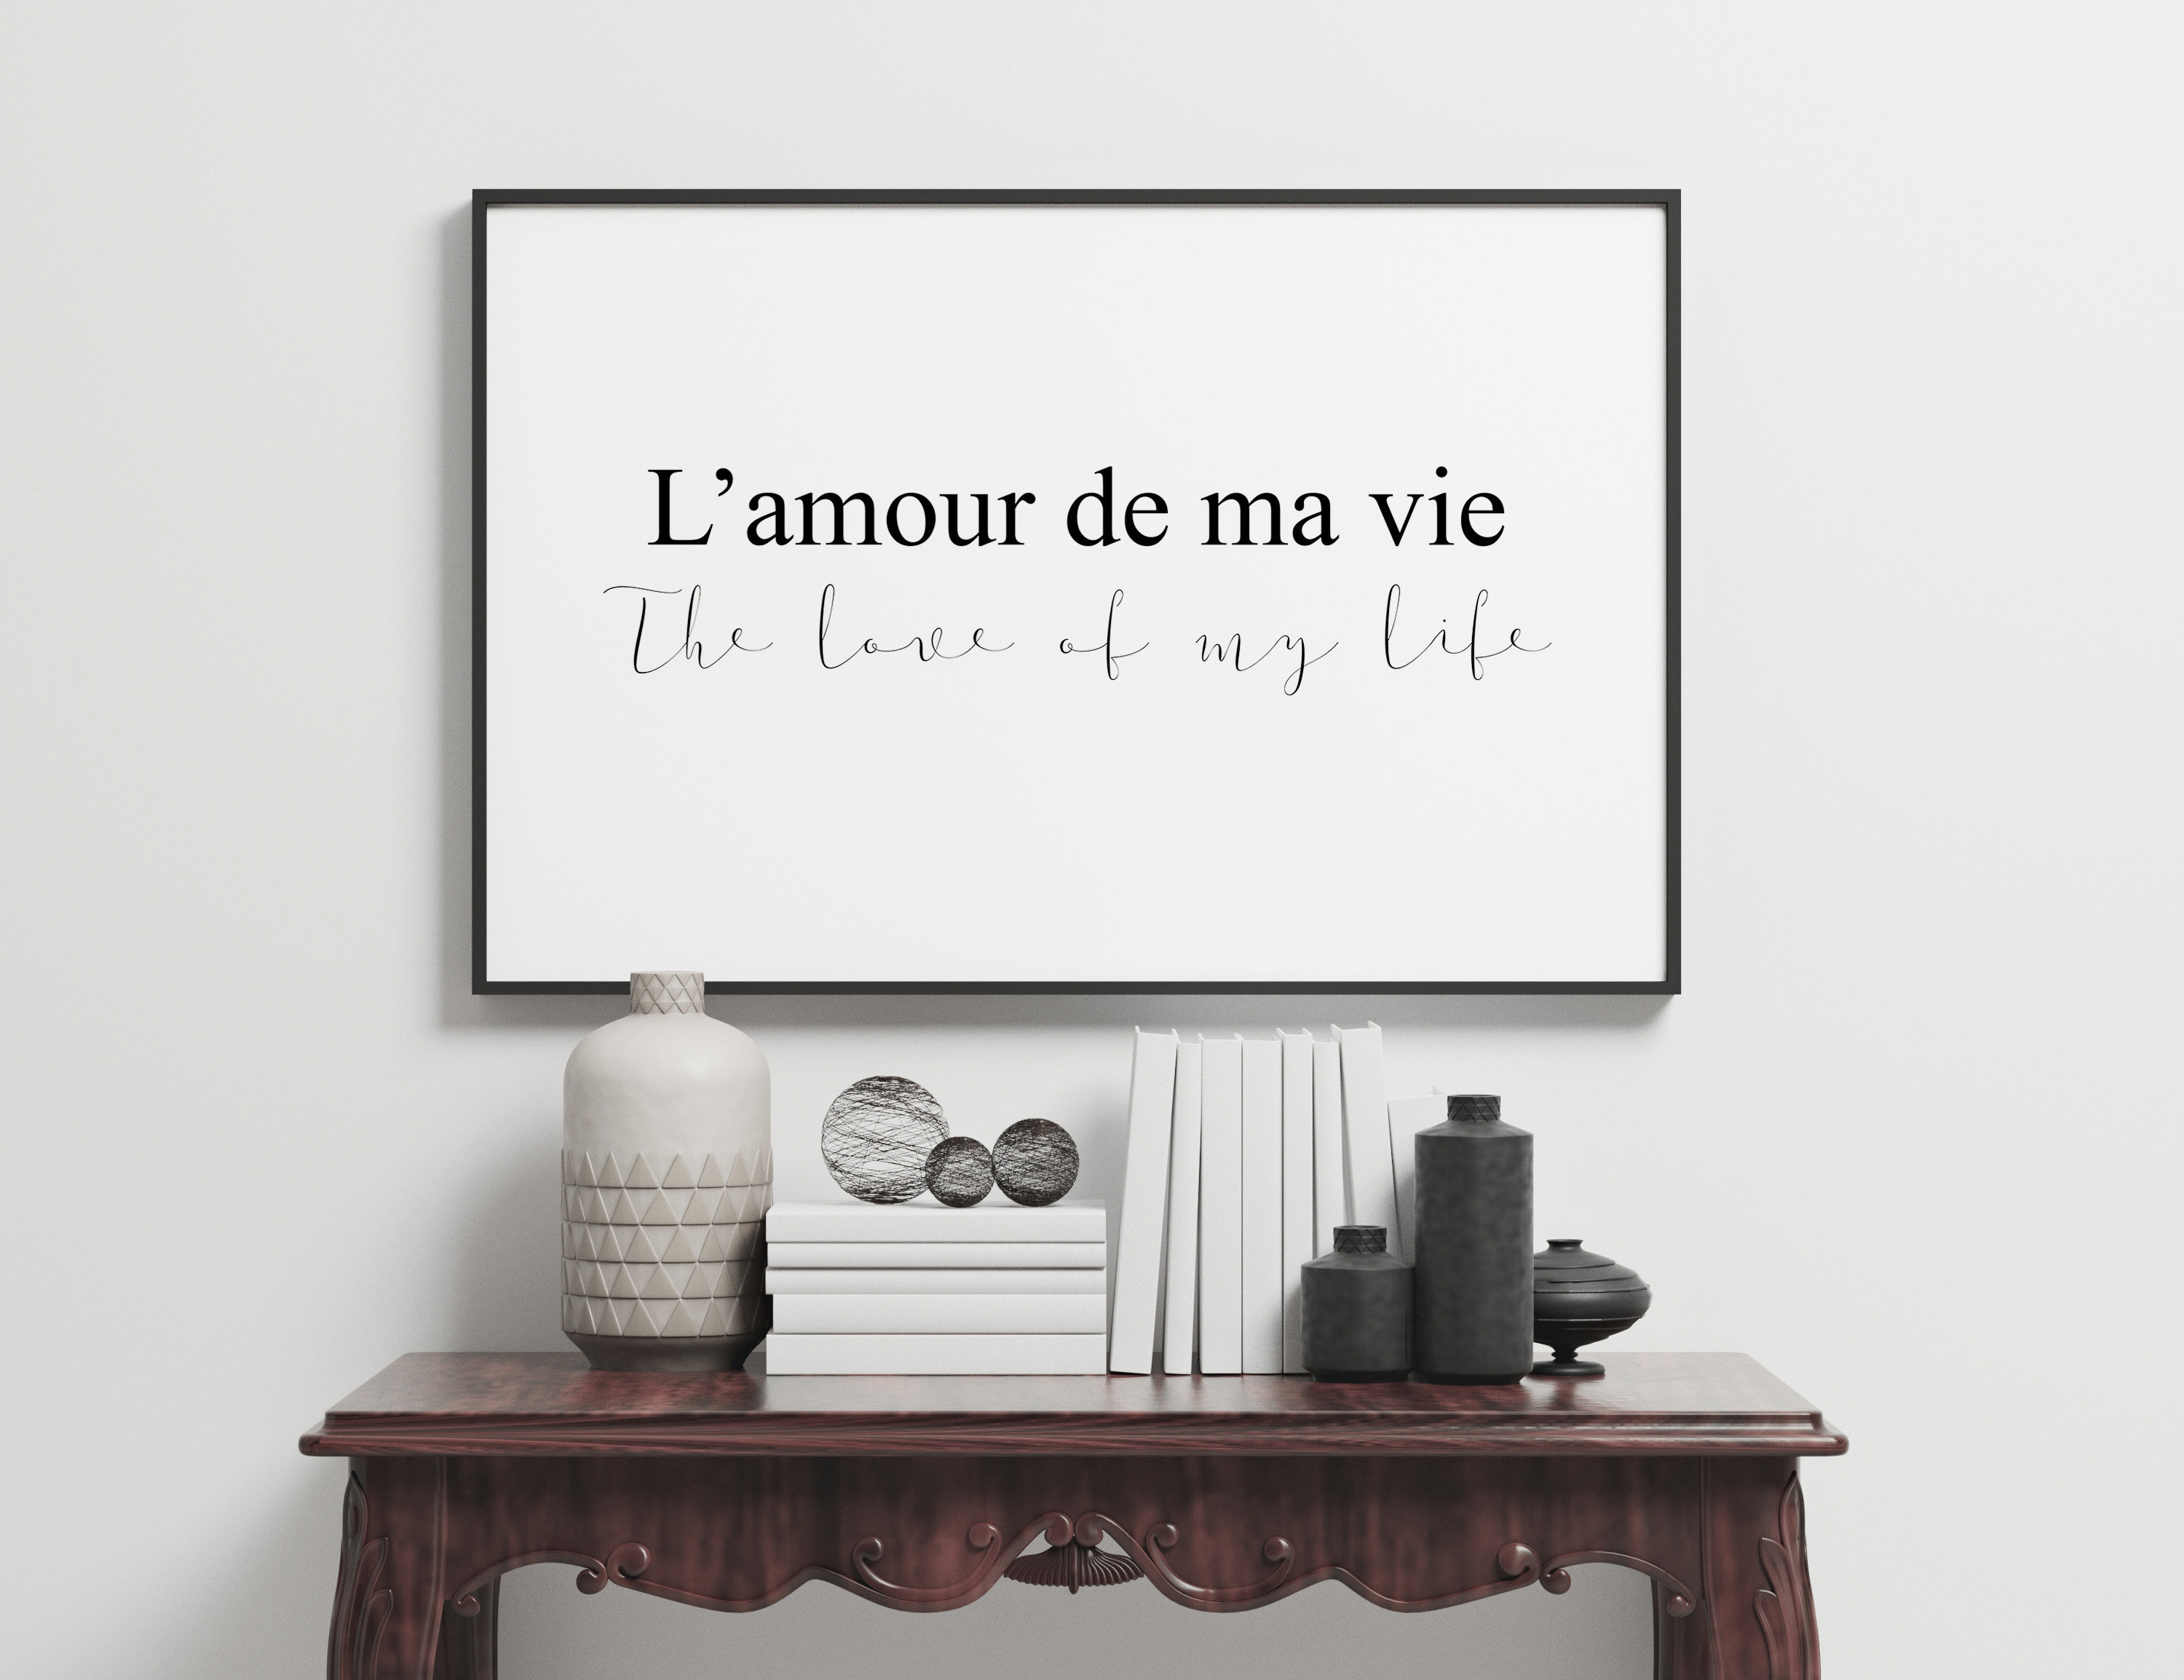 L'amour French Meaning Love Of My Life Inspirational Quote Black Home  Bedroom Typography Design Premium Poster Print Picture Wall Art X2